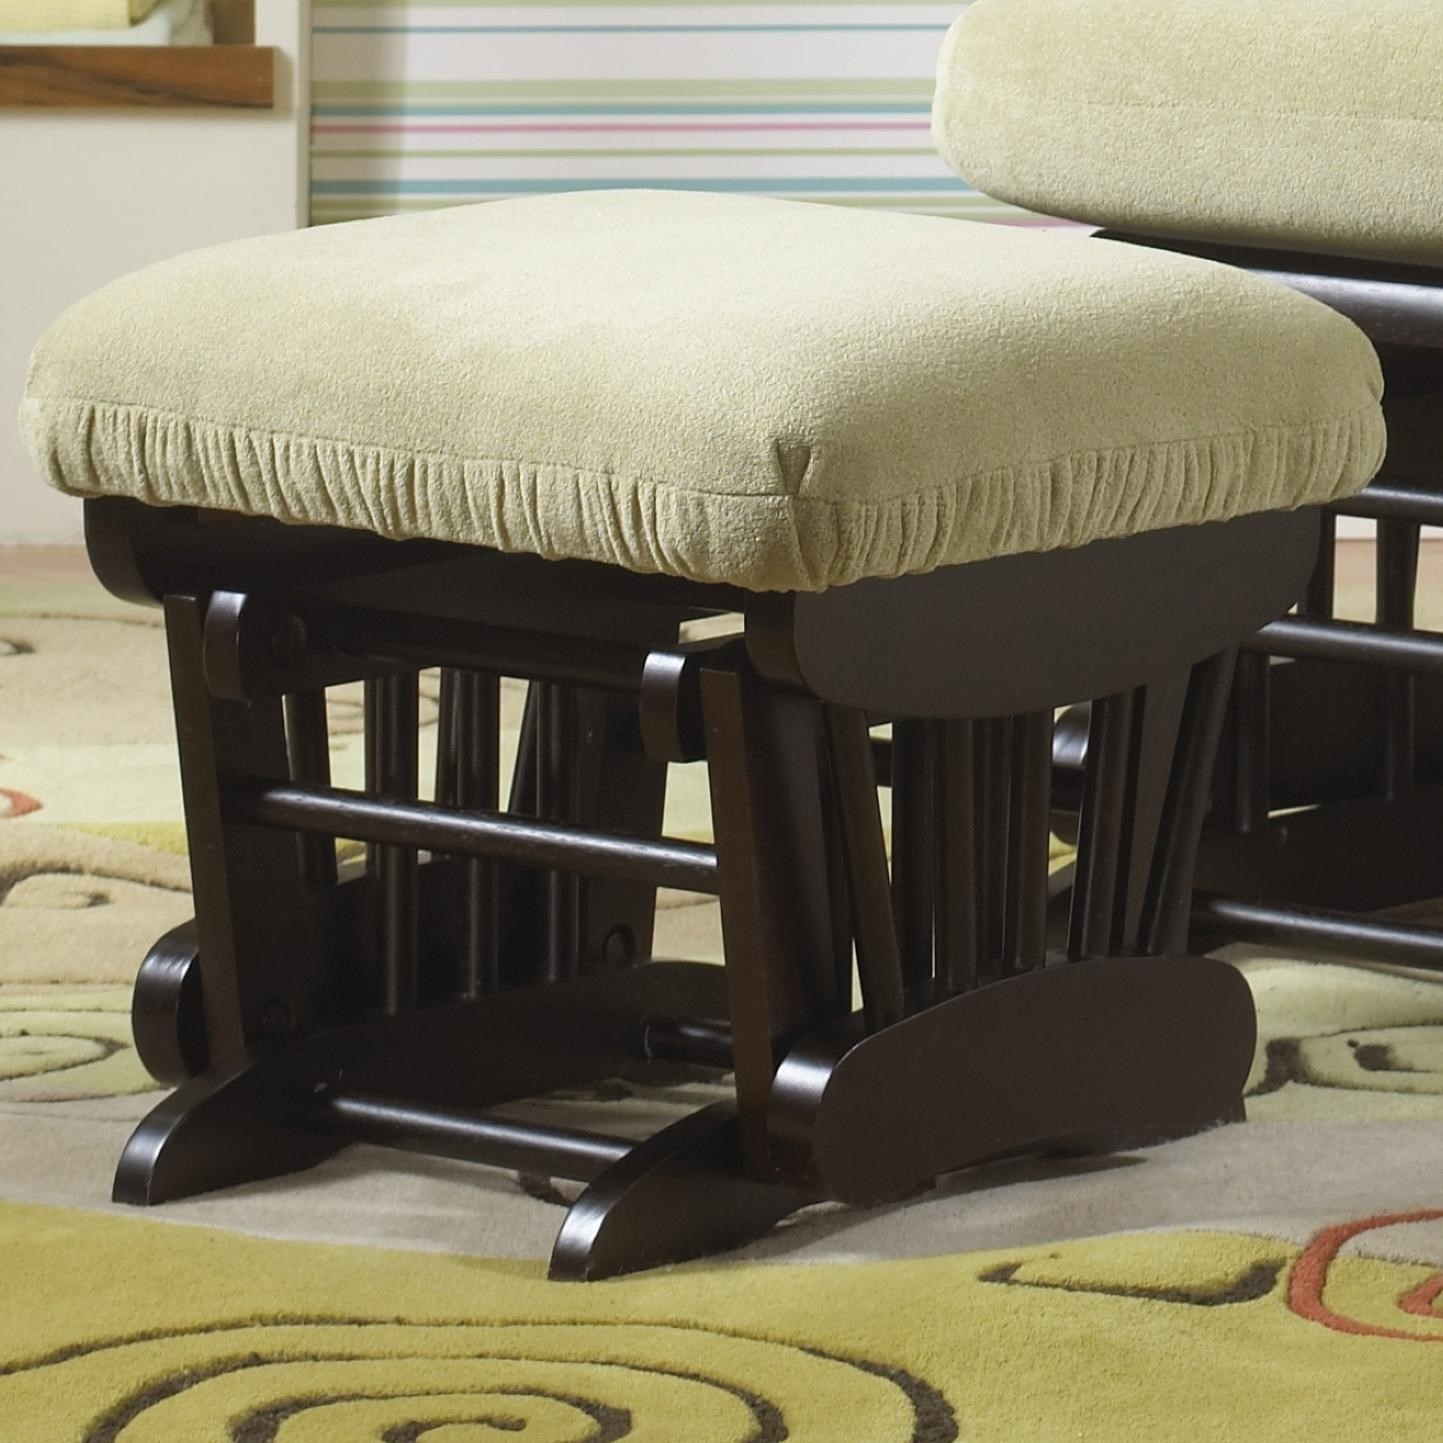 best chairs glider white fabric dining storytime series rockers and ottomans ottomansottoman